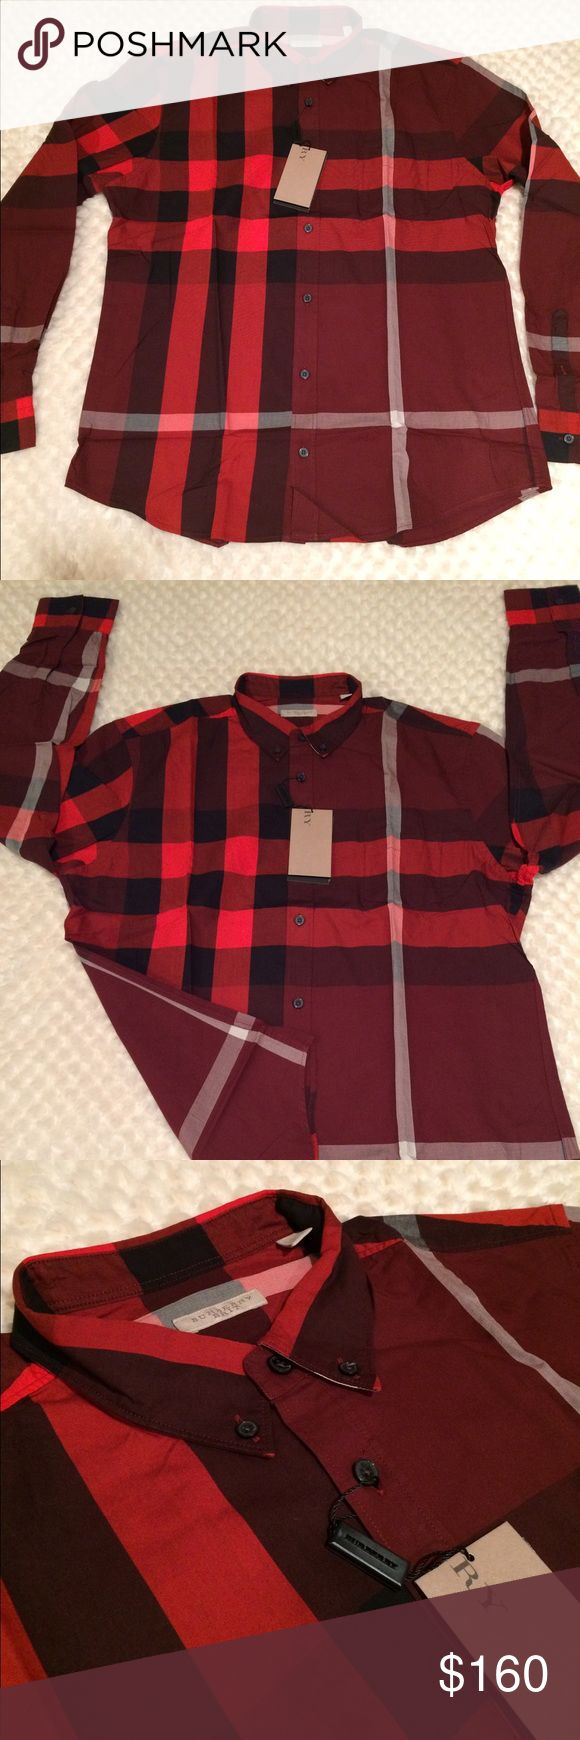 New burberry shirt for men New with tags burberry shirt long sleeves 100% cotton color red Burberry Shirts Casual Button Down Shirts